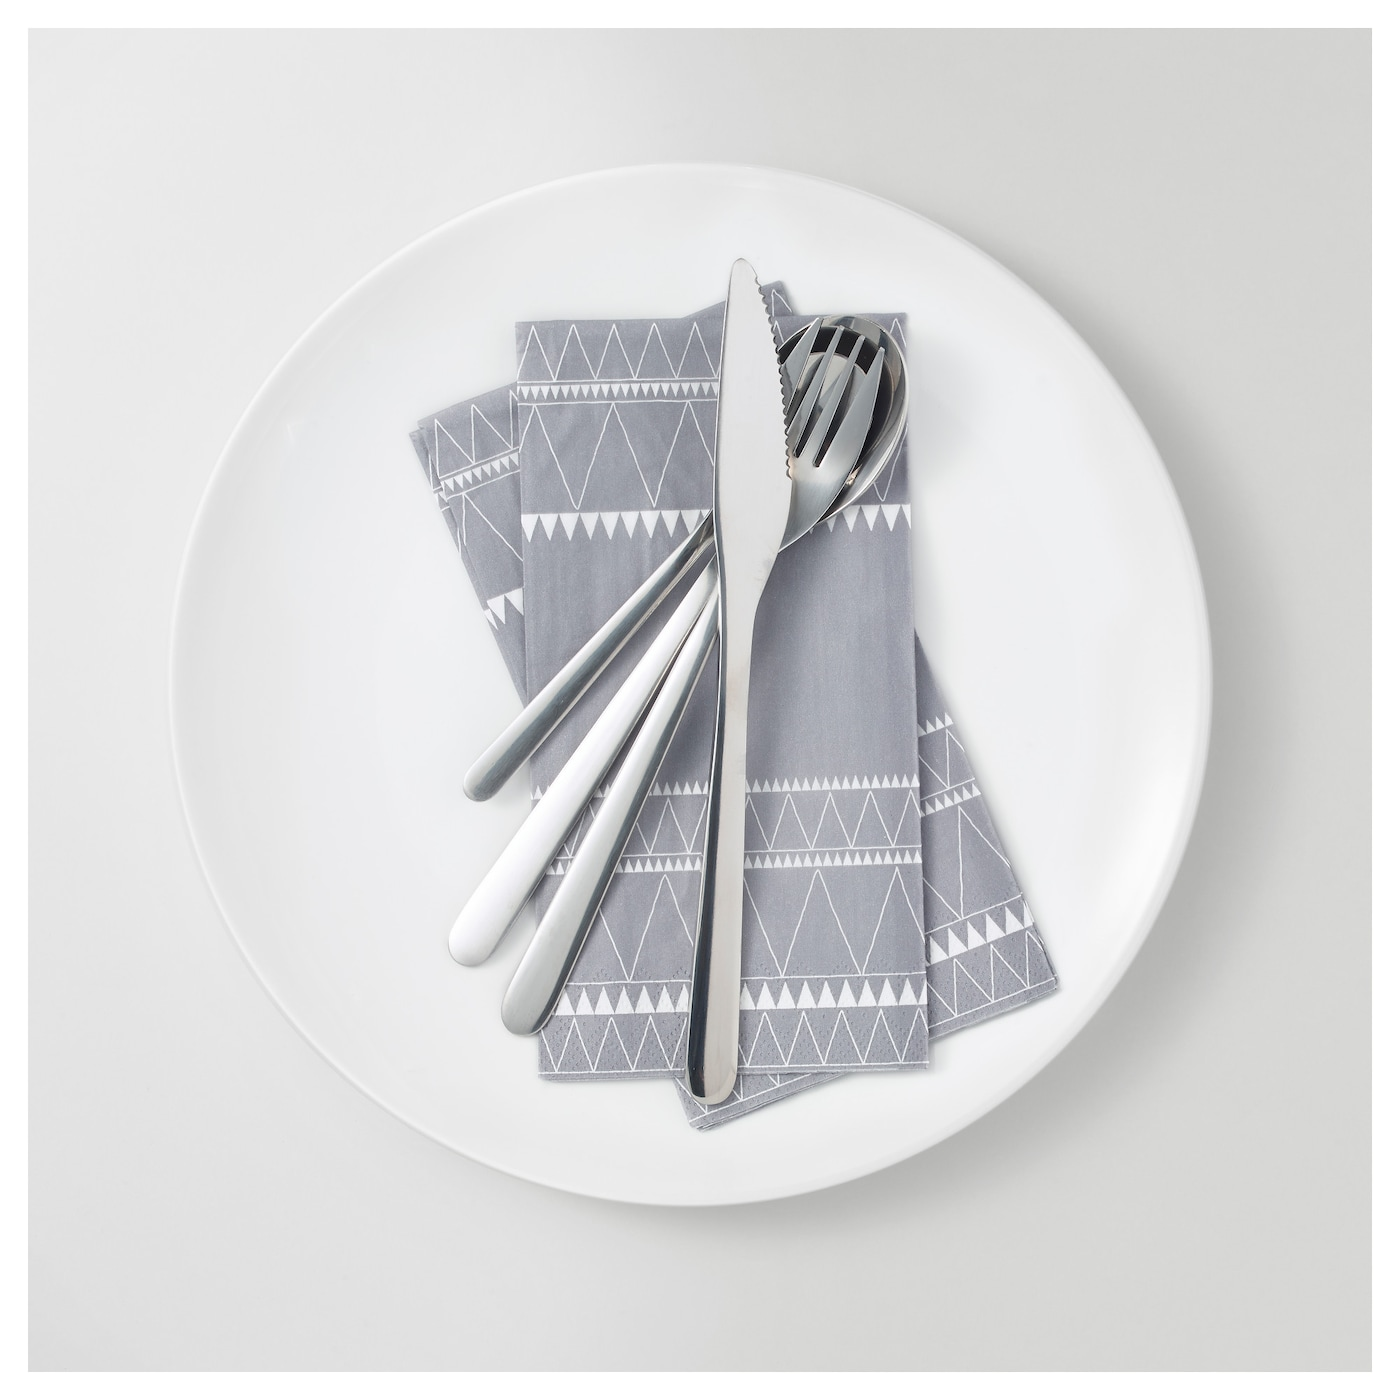 IKEA VINTER 2017 paper napkin The napkin is highly absorbent because it's made of three-ply paper.